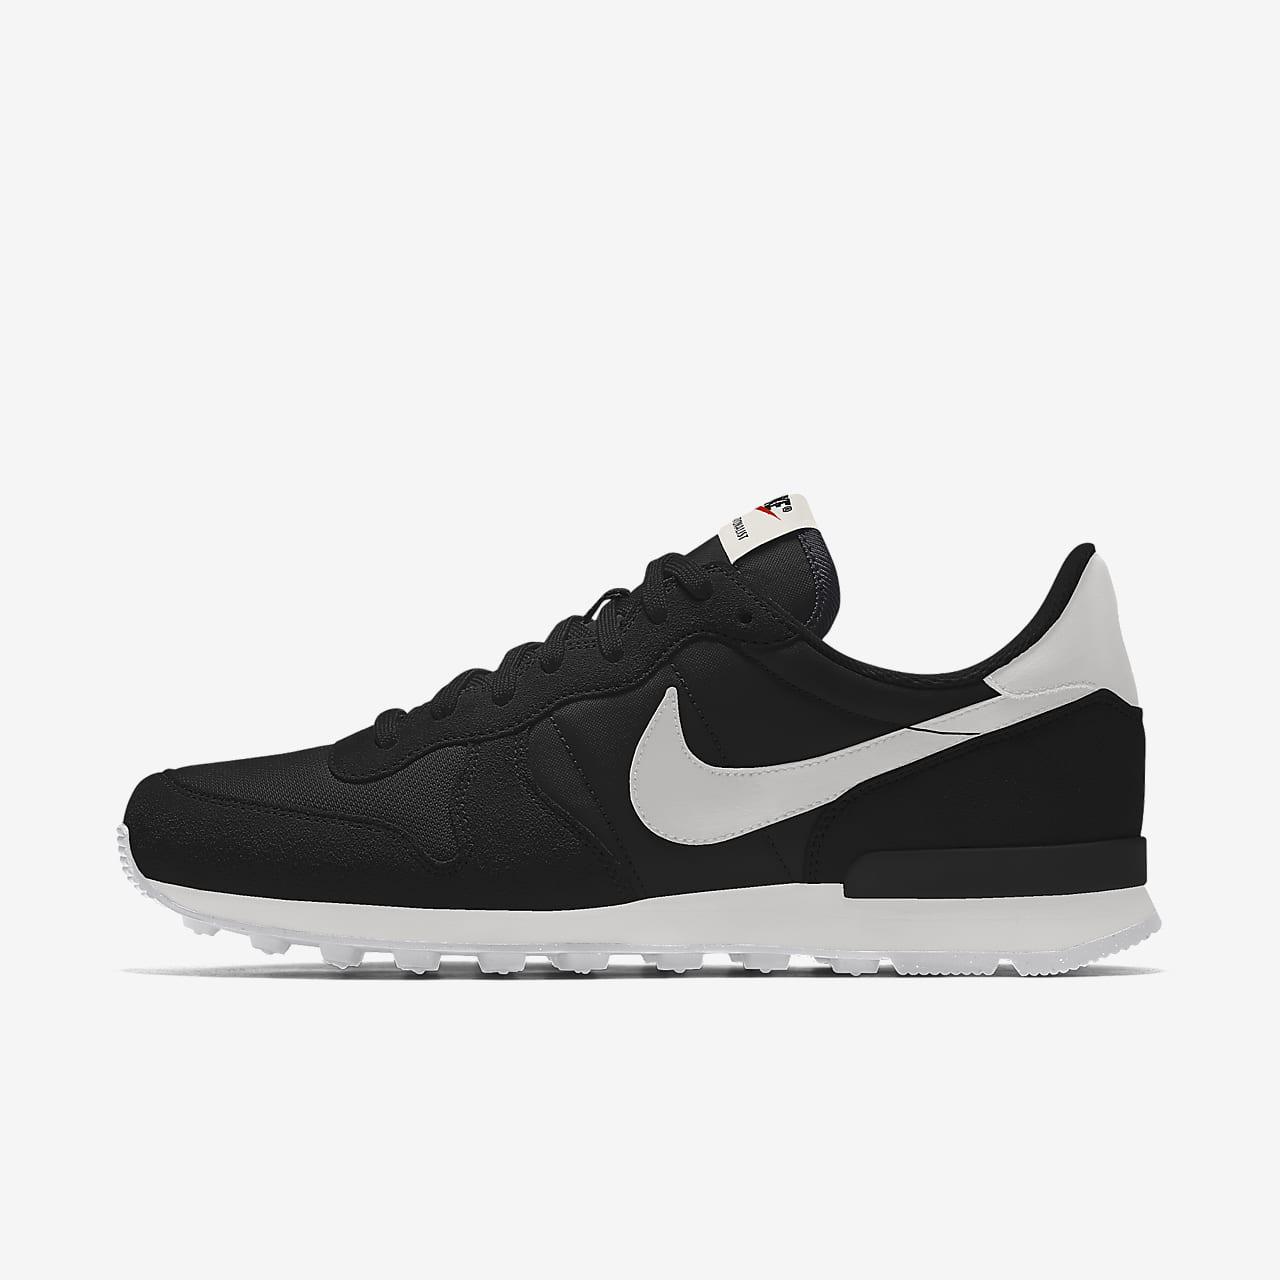 Chaussure personnalisable Nike Internationalist By You pour Homme